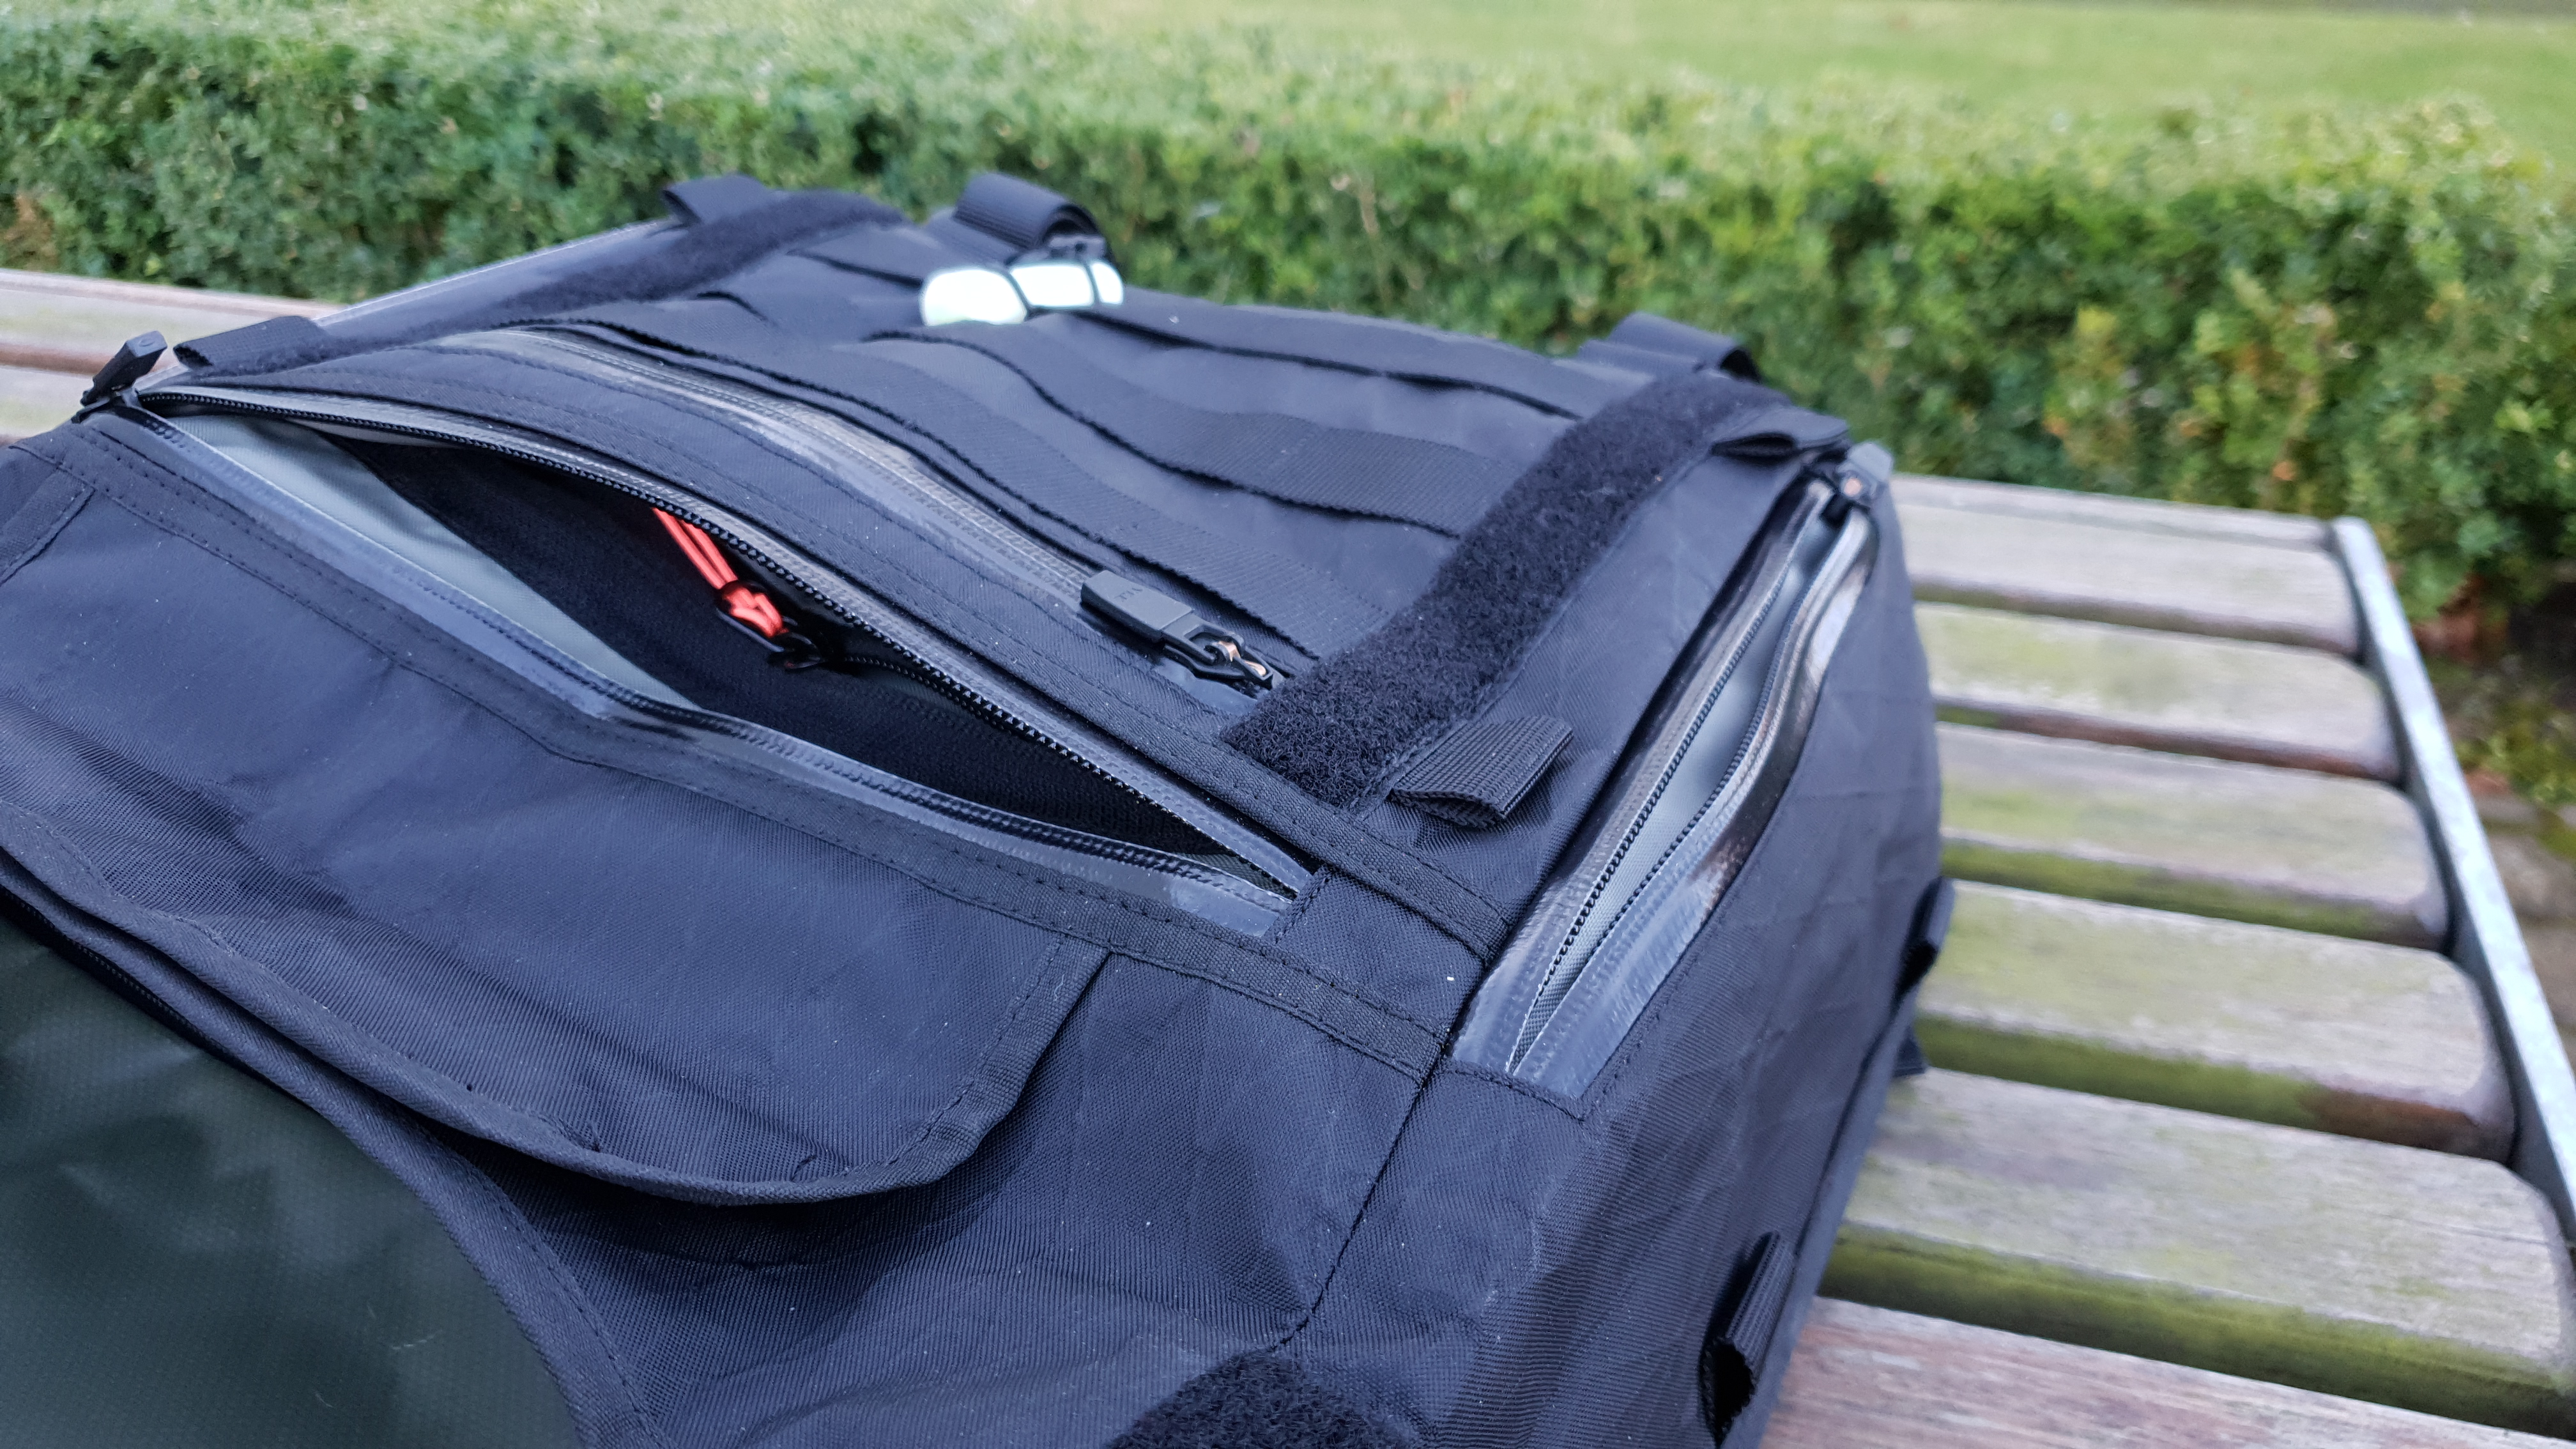 Orbit Gear R221 messenger bag review front pockets organization face panel WR zippers pals webbing